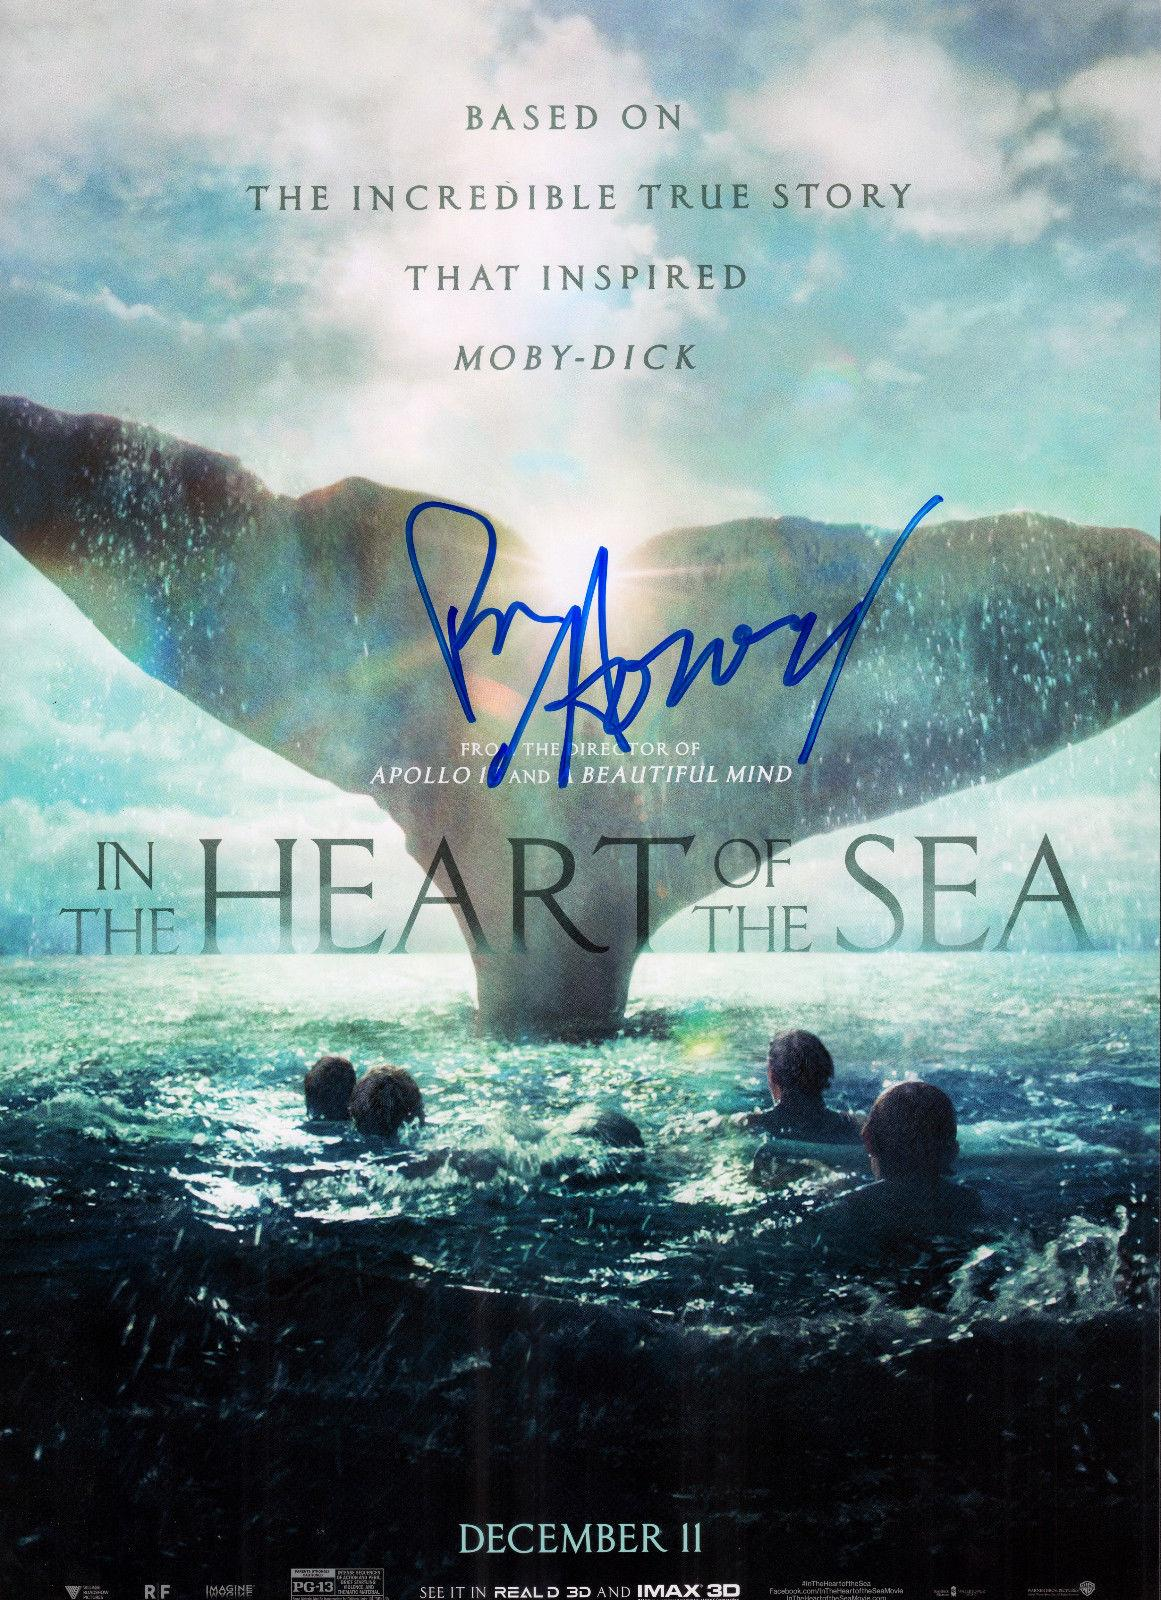 Ron Howard Signed 12x18 Poster w/COA Authentic In The Heart of the Sea #2